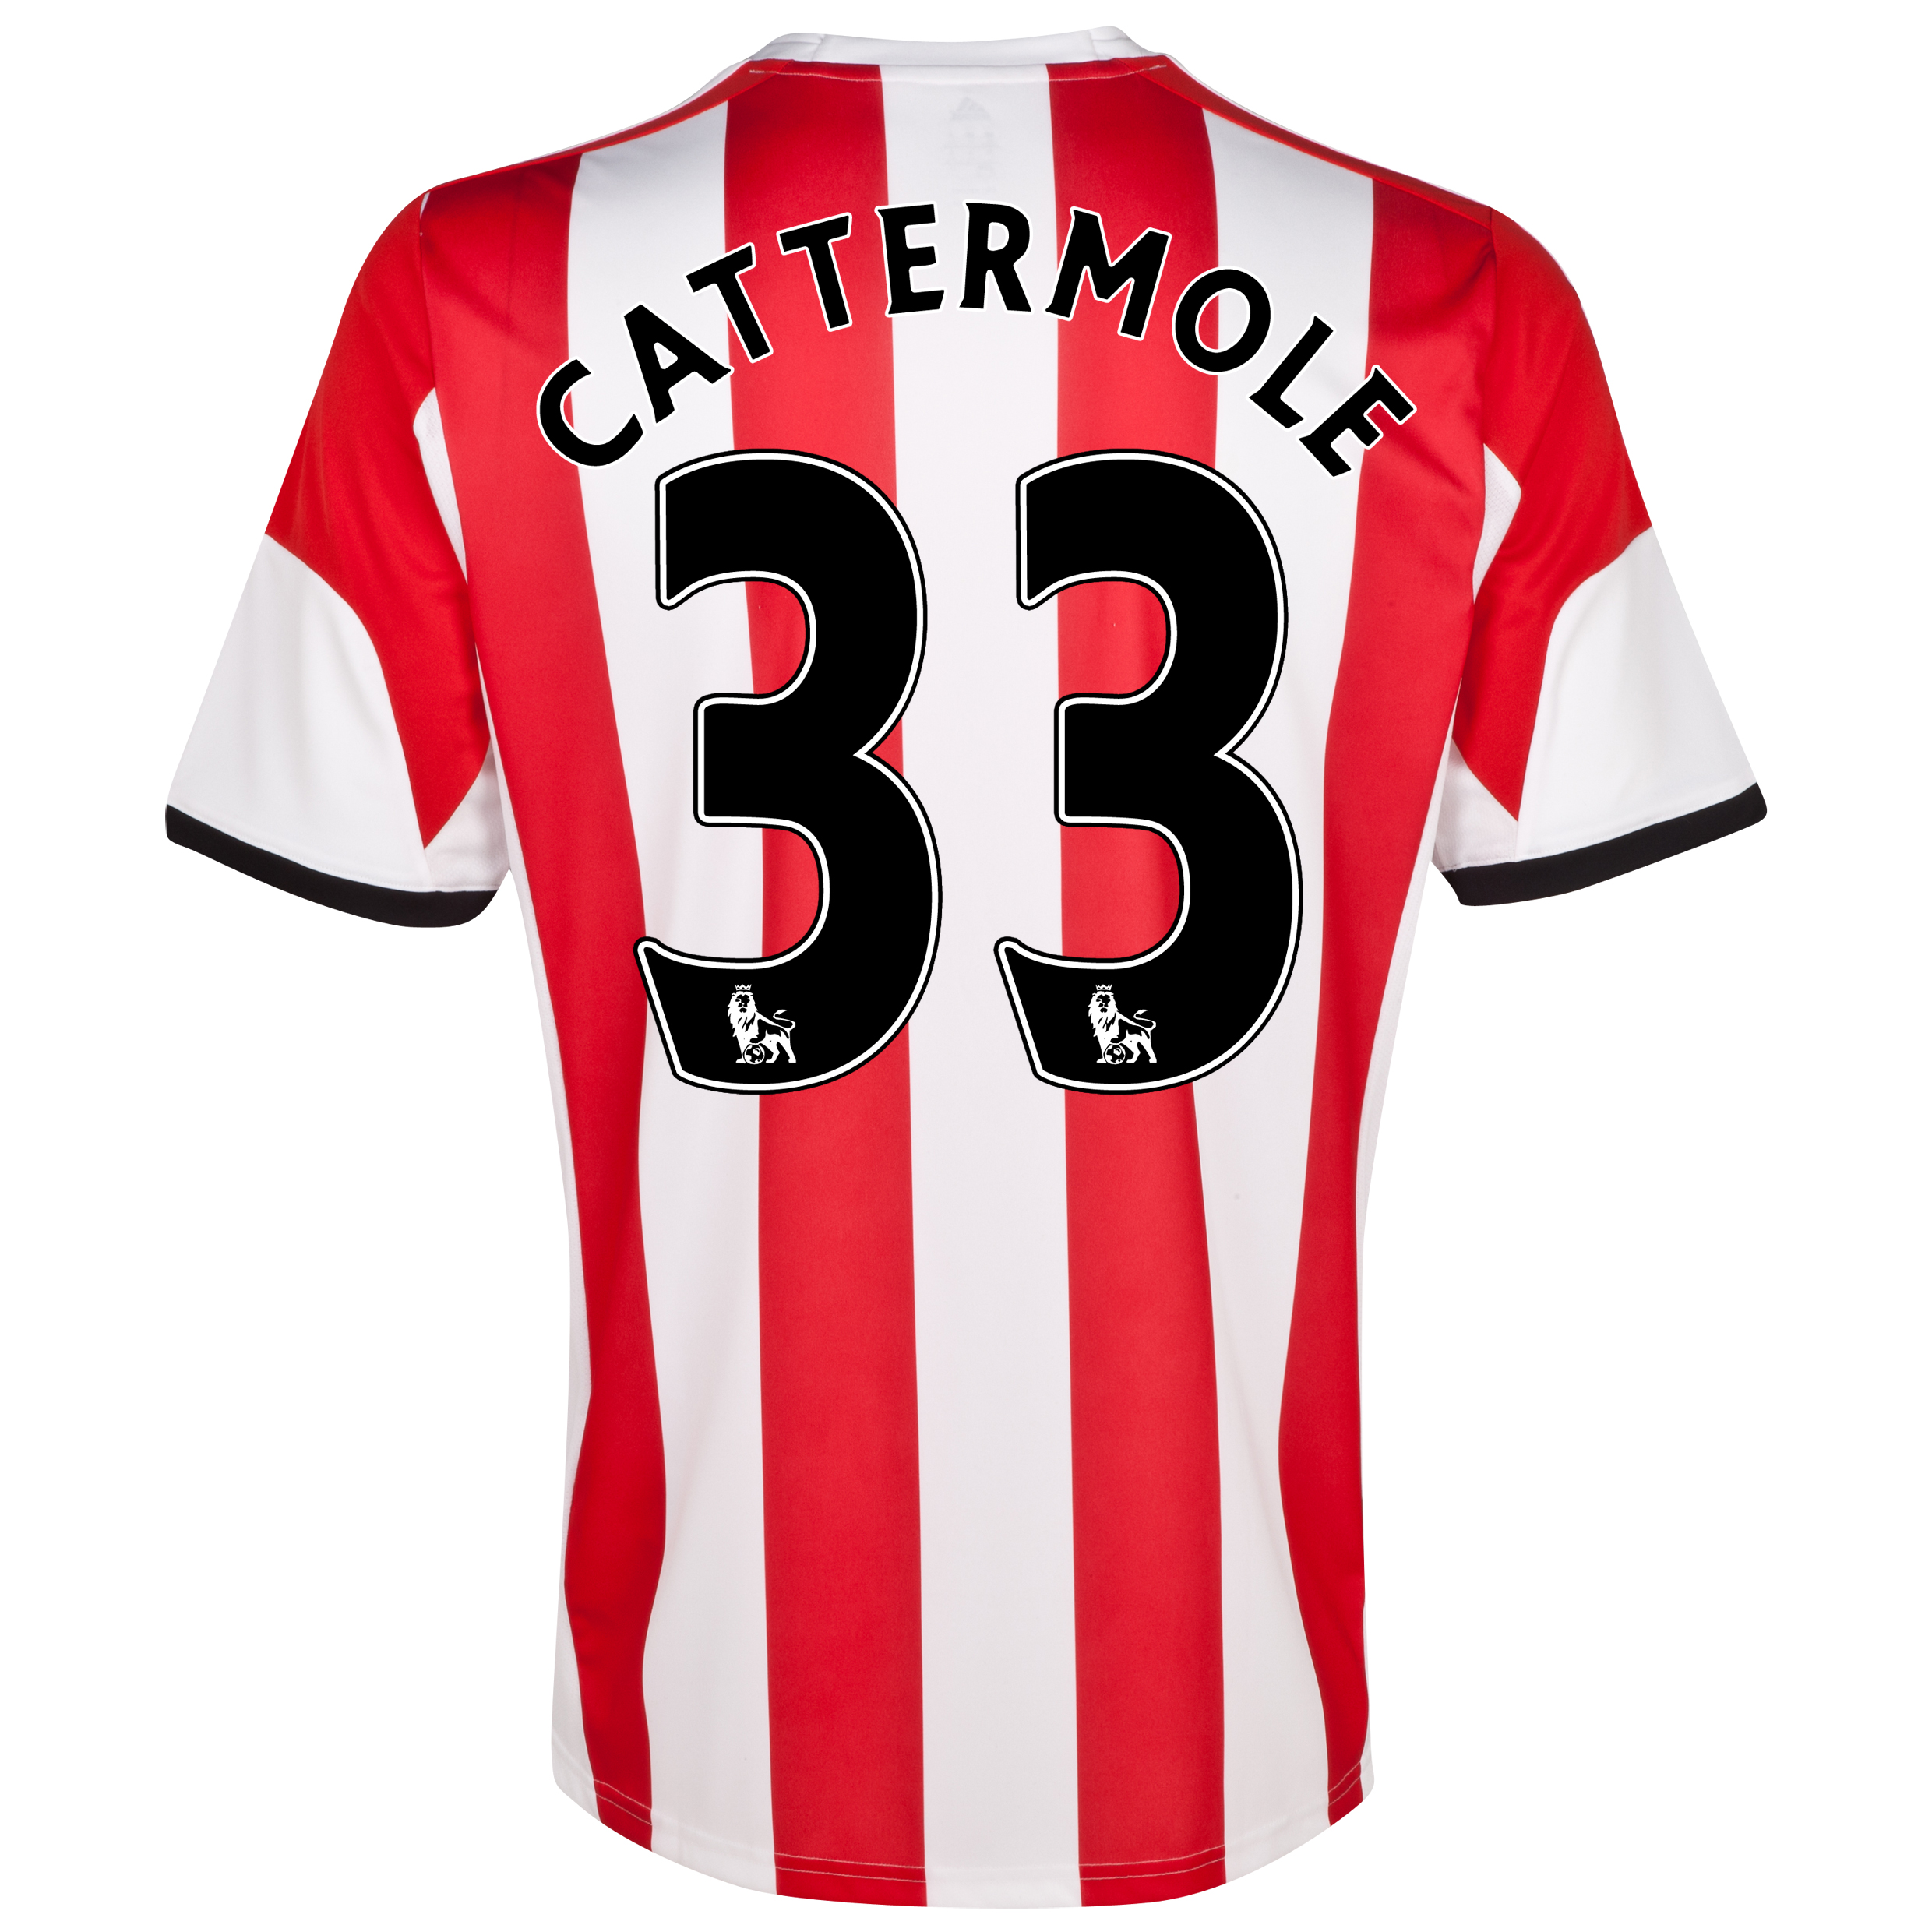 Sunderland Home Shirt 2013/14 - Junior with Cattermole 33 printing